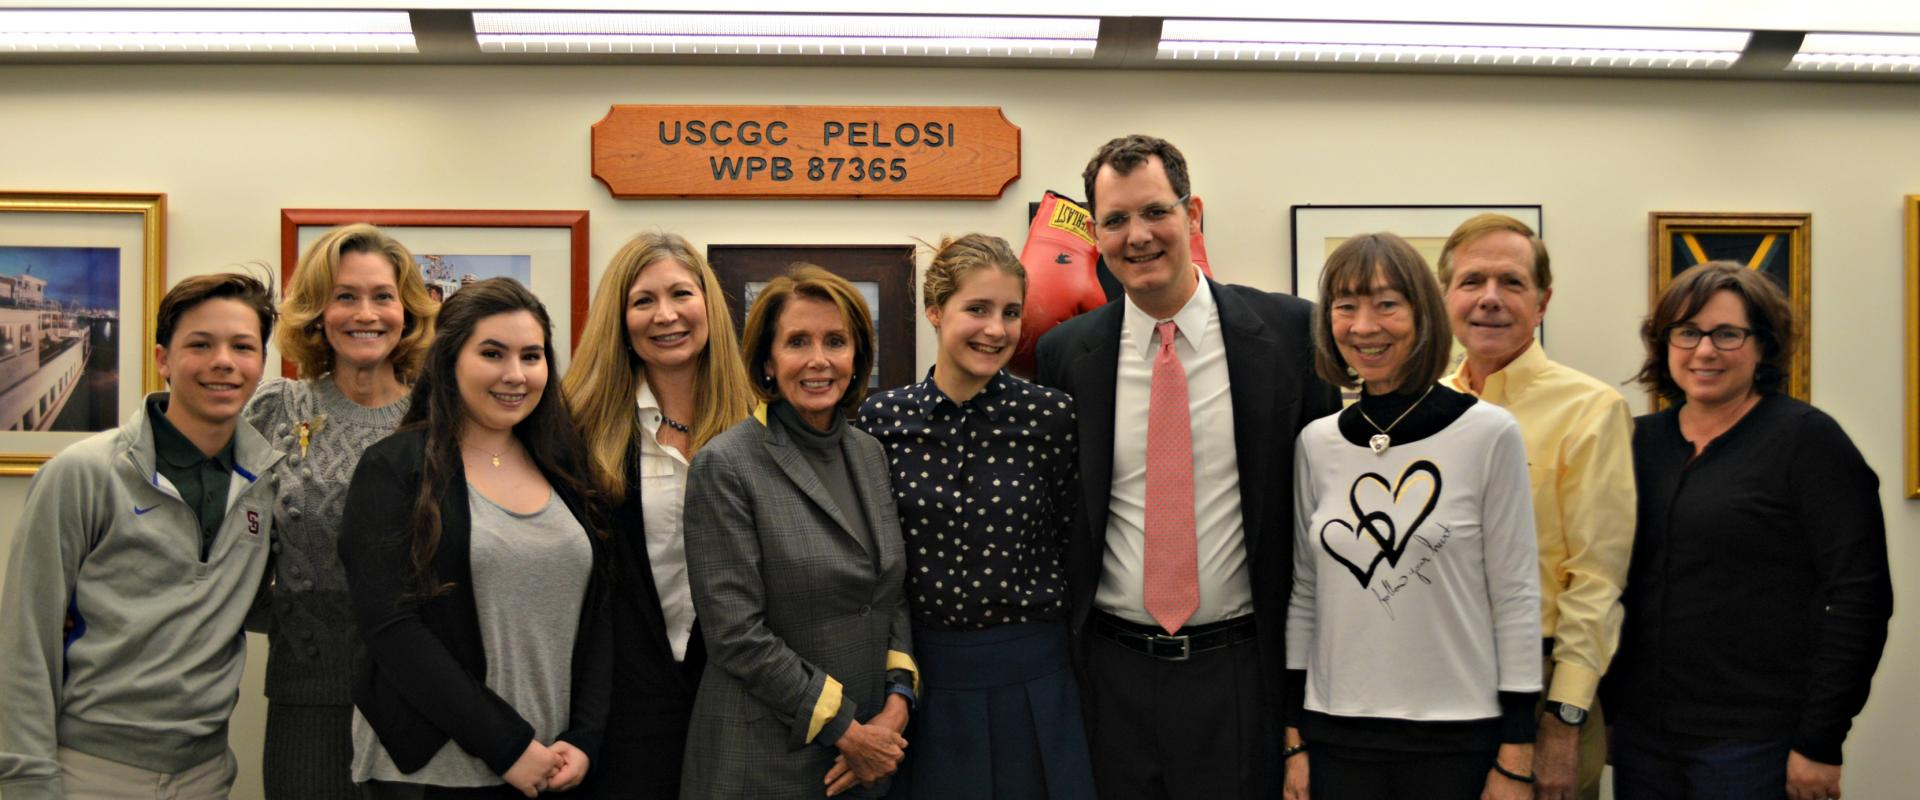 Congresswoman Pelosi meets with the Juvenile Diabetes Research Foundation to discuss children with Type 1 Diabetes and the fight for preserving Affordable Care Act's protections for individuals with preexisting conditions.